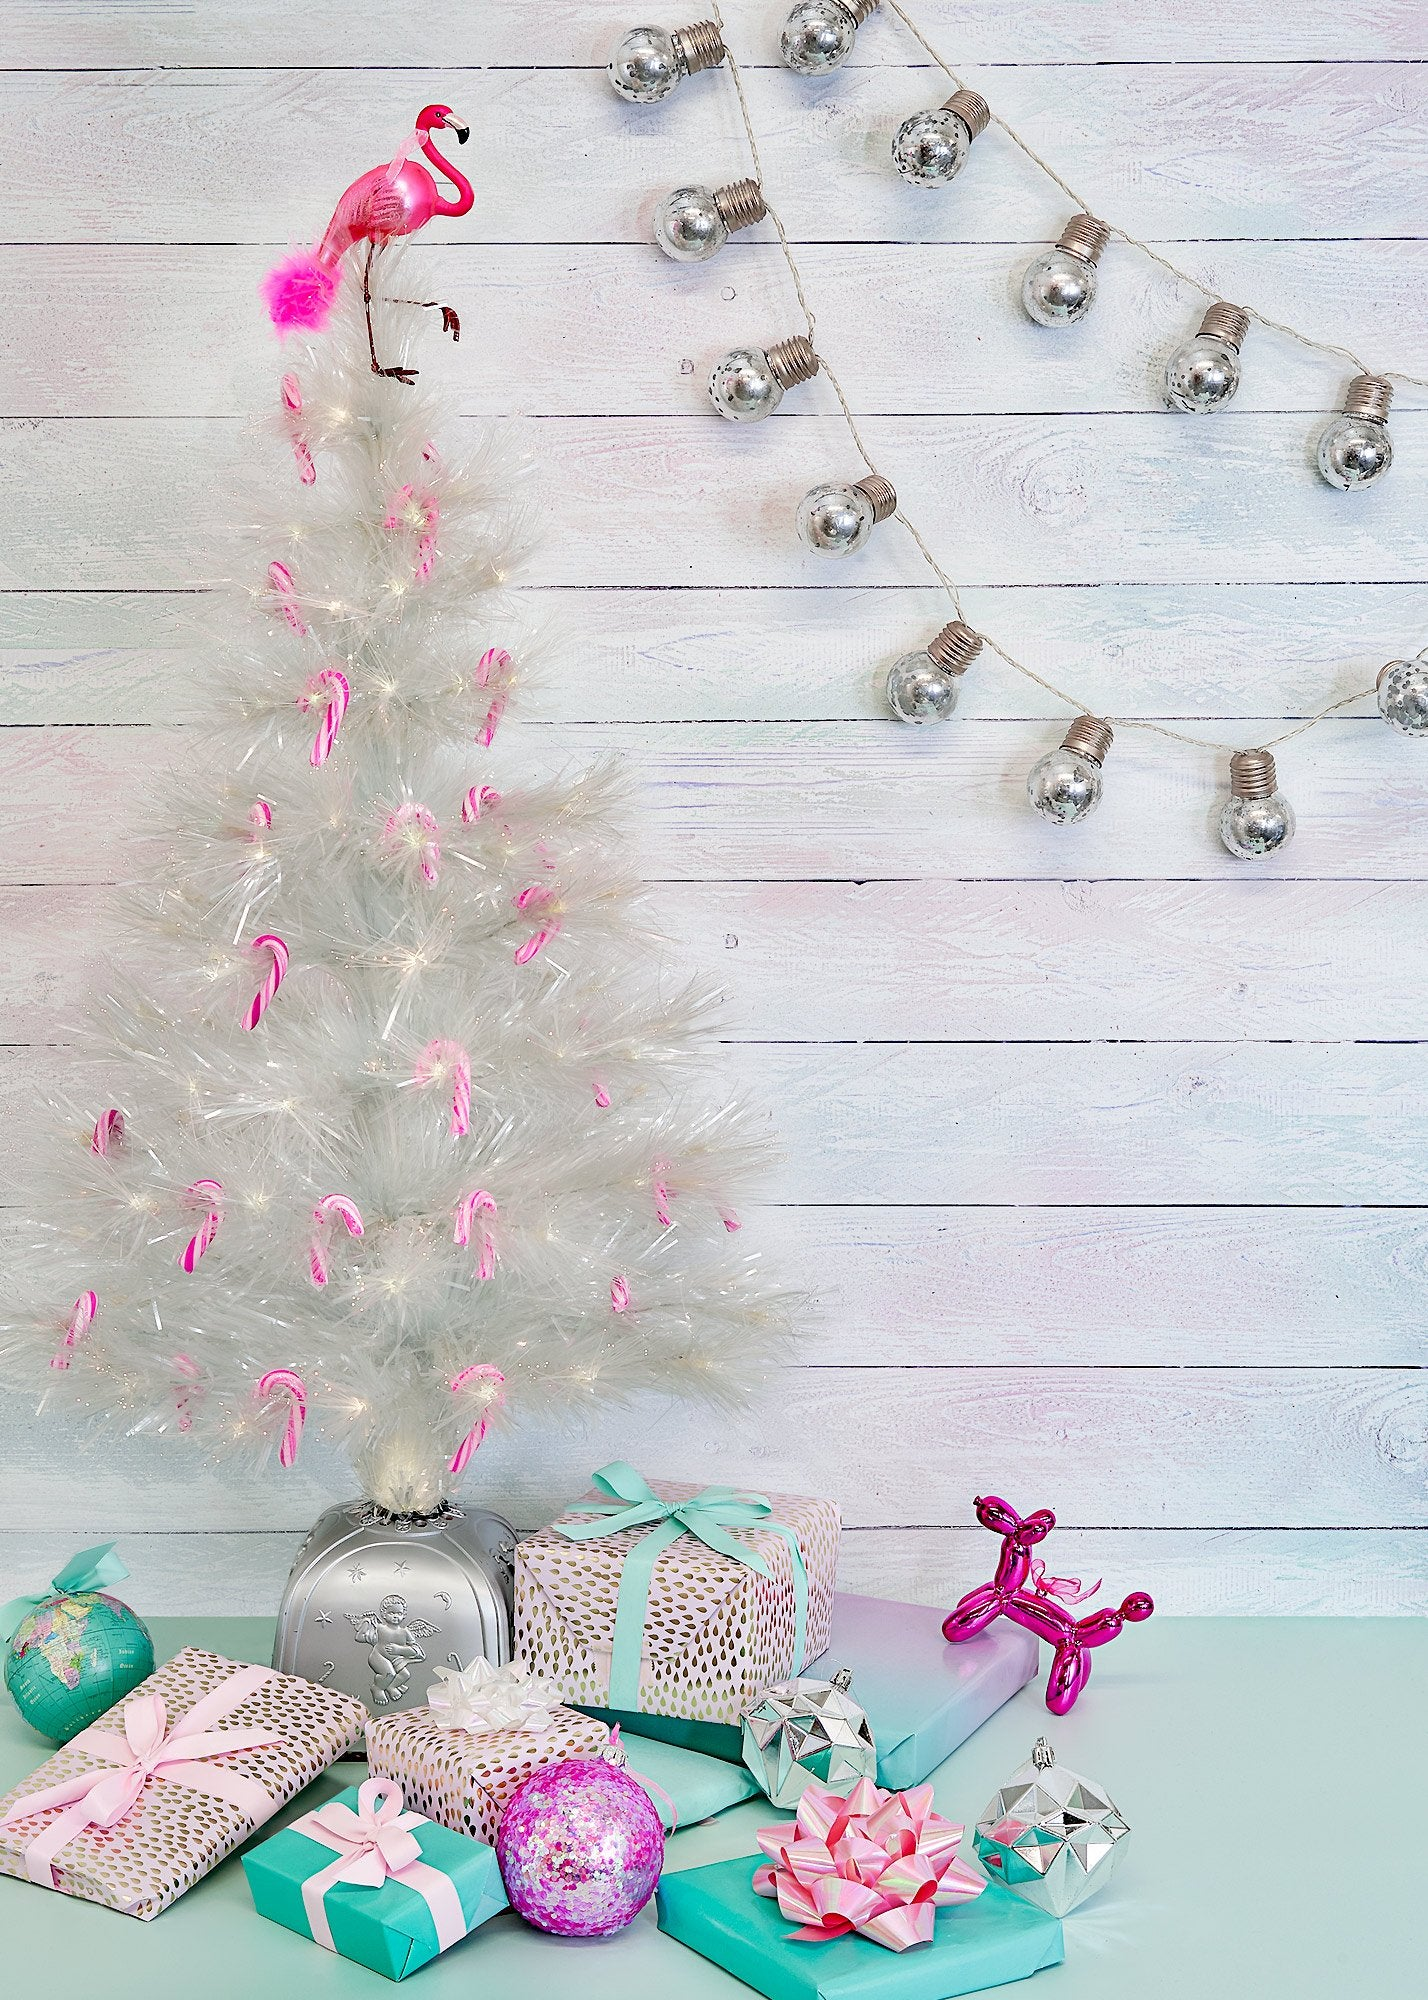 Unicorn Wood Large Vinyl Photography Backdrop by Club Backdrops [90 x 120cm / ~3 x 4ft]